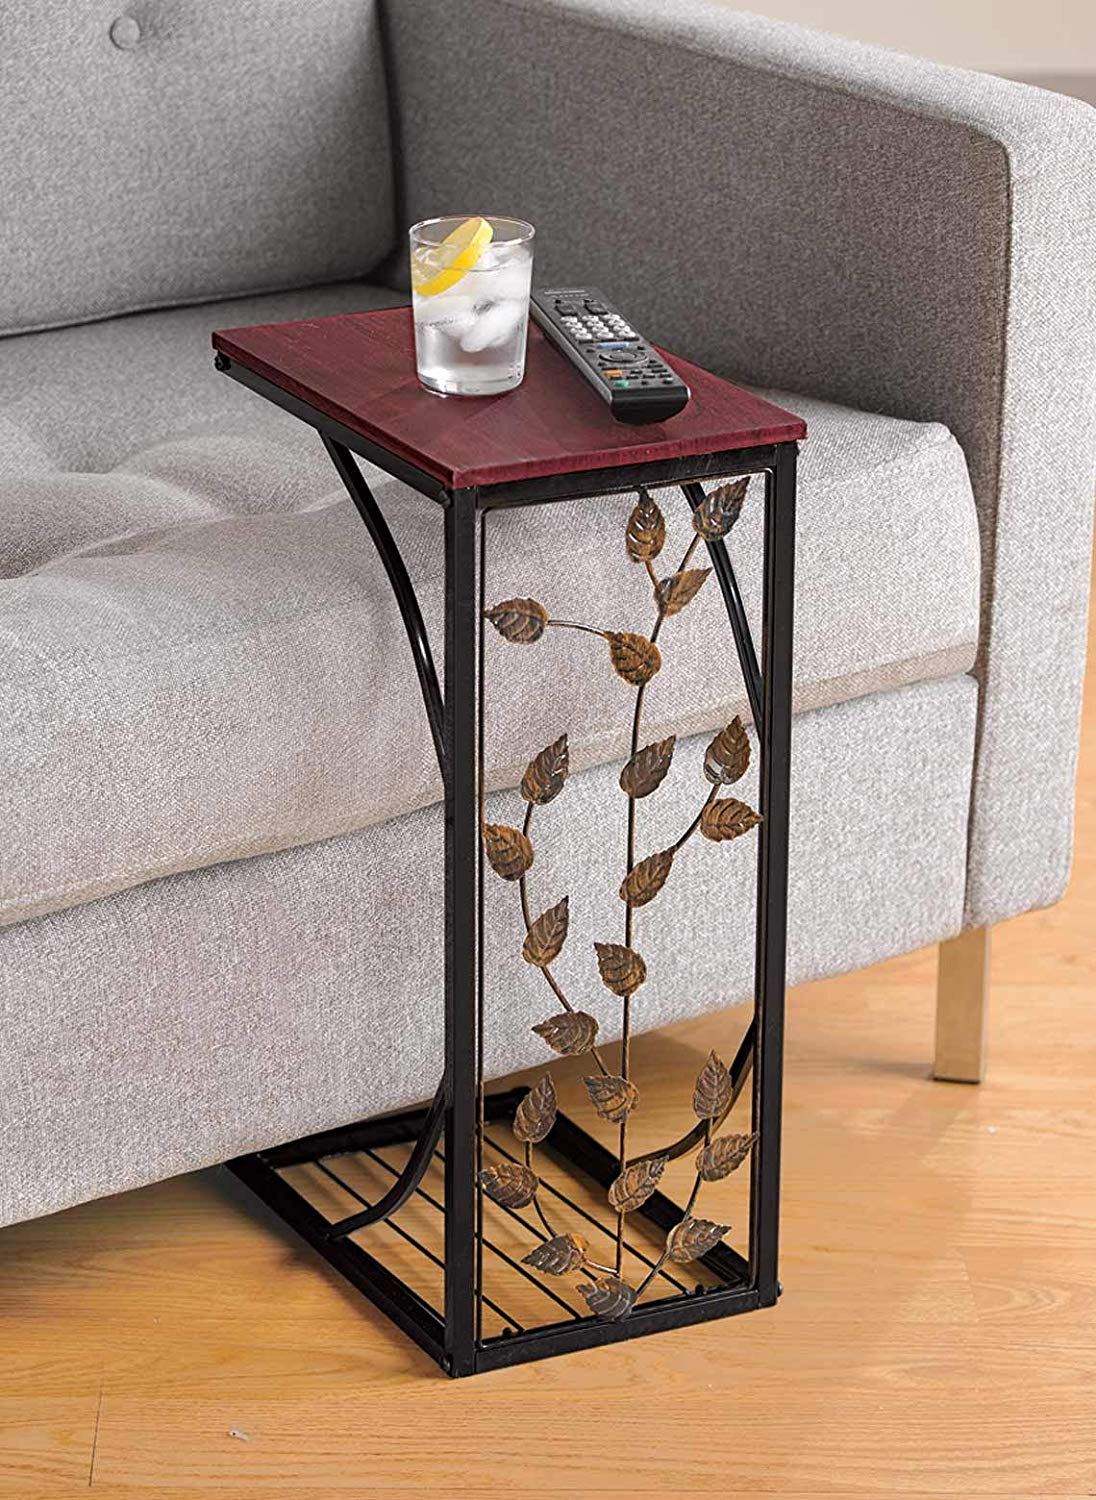 sofa side and end table small metal dark brown wood tables coffee top with leaf design perfect for your living room slides chair recliner keep riverside furniture medley henredon